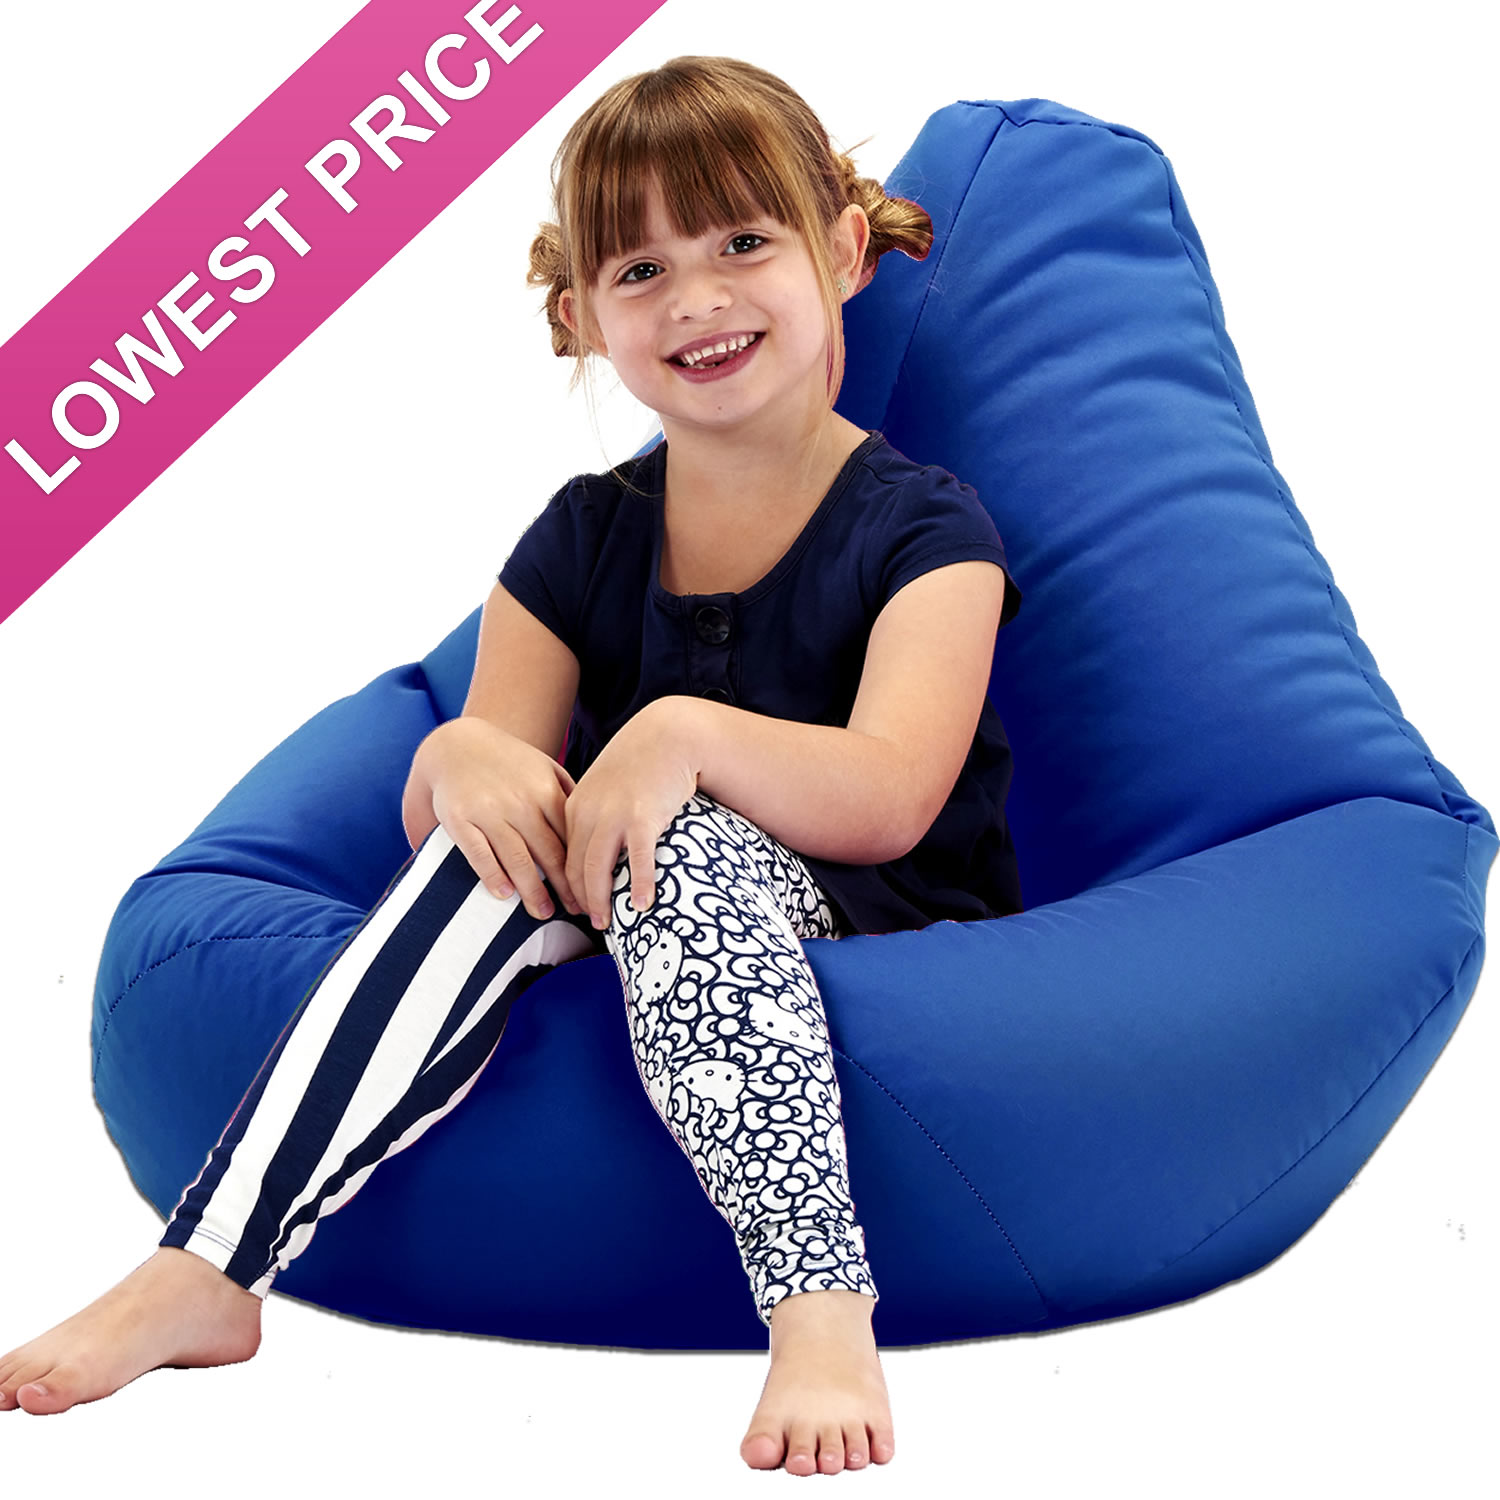 bean bag chair cost comfortable lawn chairs kids highback beanbag for indoors or outdoors